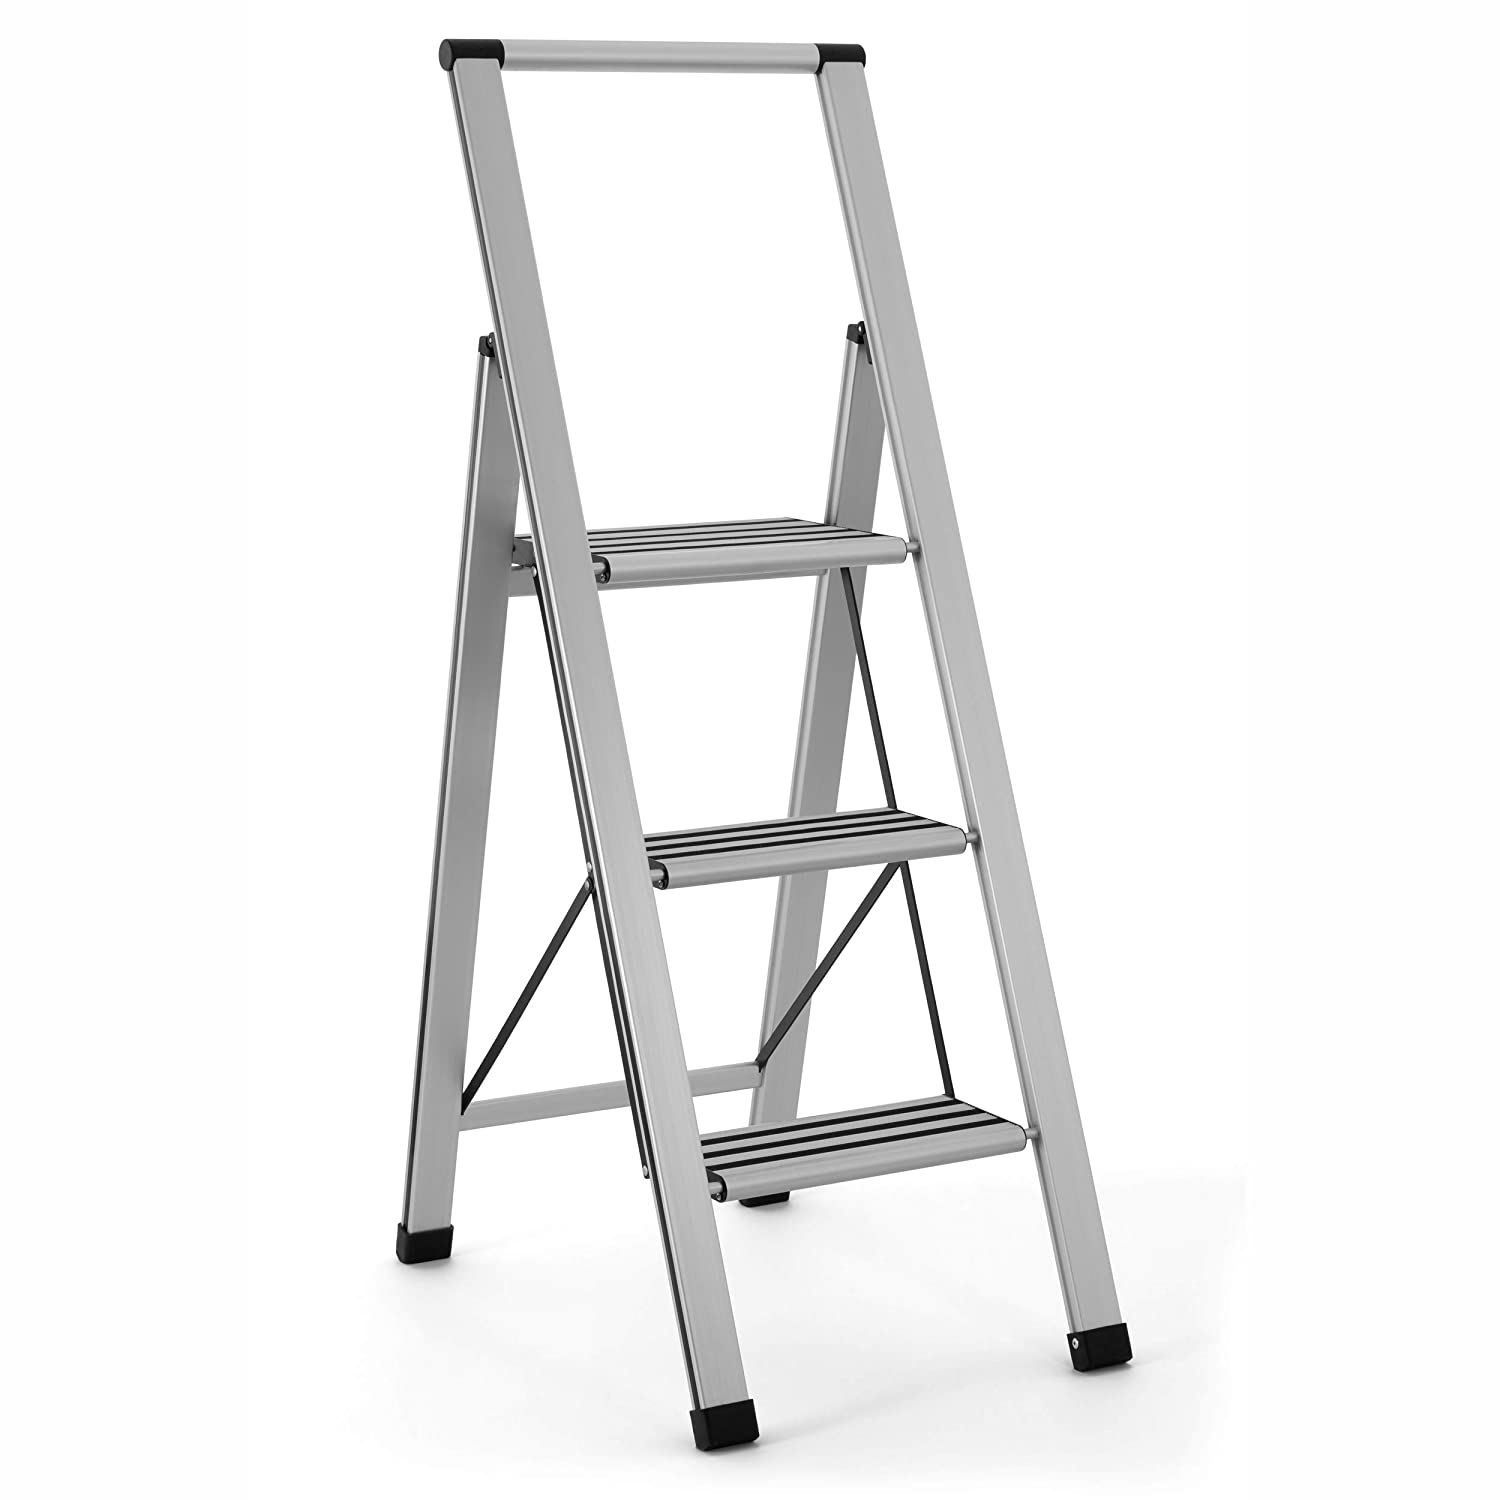 Terrific Delxo 2 In 1 Lightweight Aluminum 3 Step Ladder Stylish Beatyapartments Chair Design Images Beatyapartmentscom